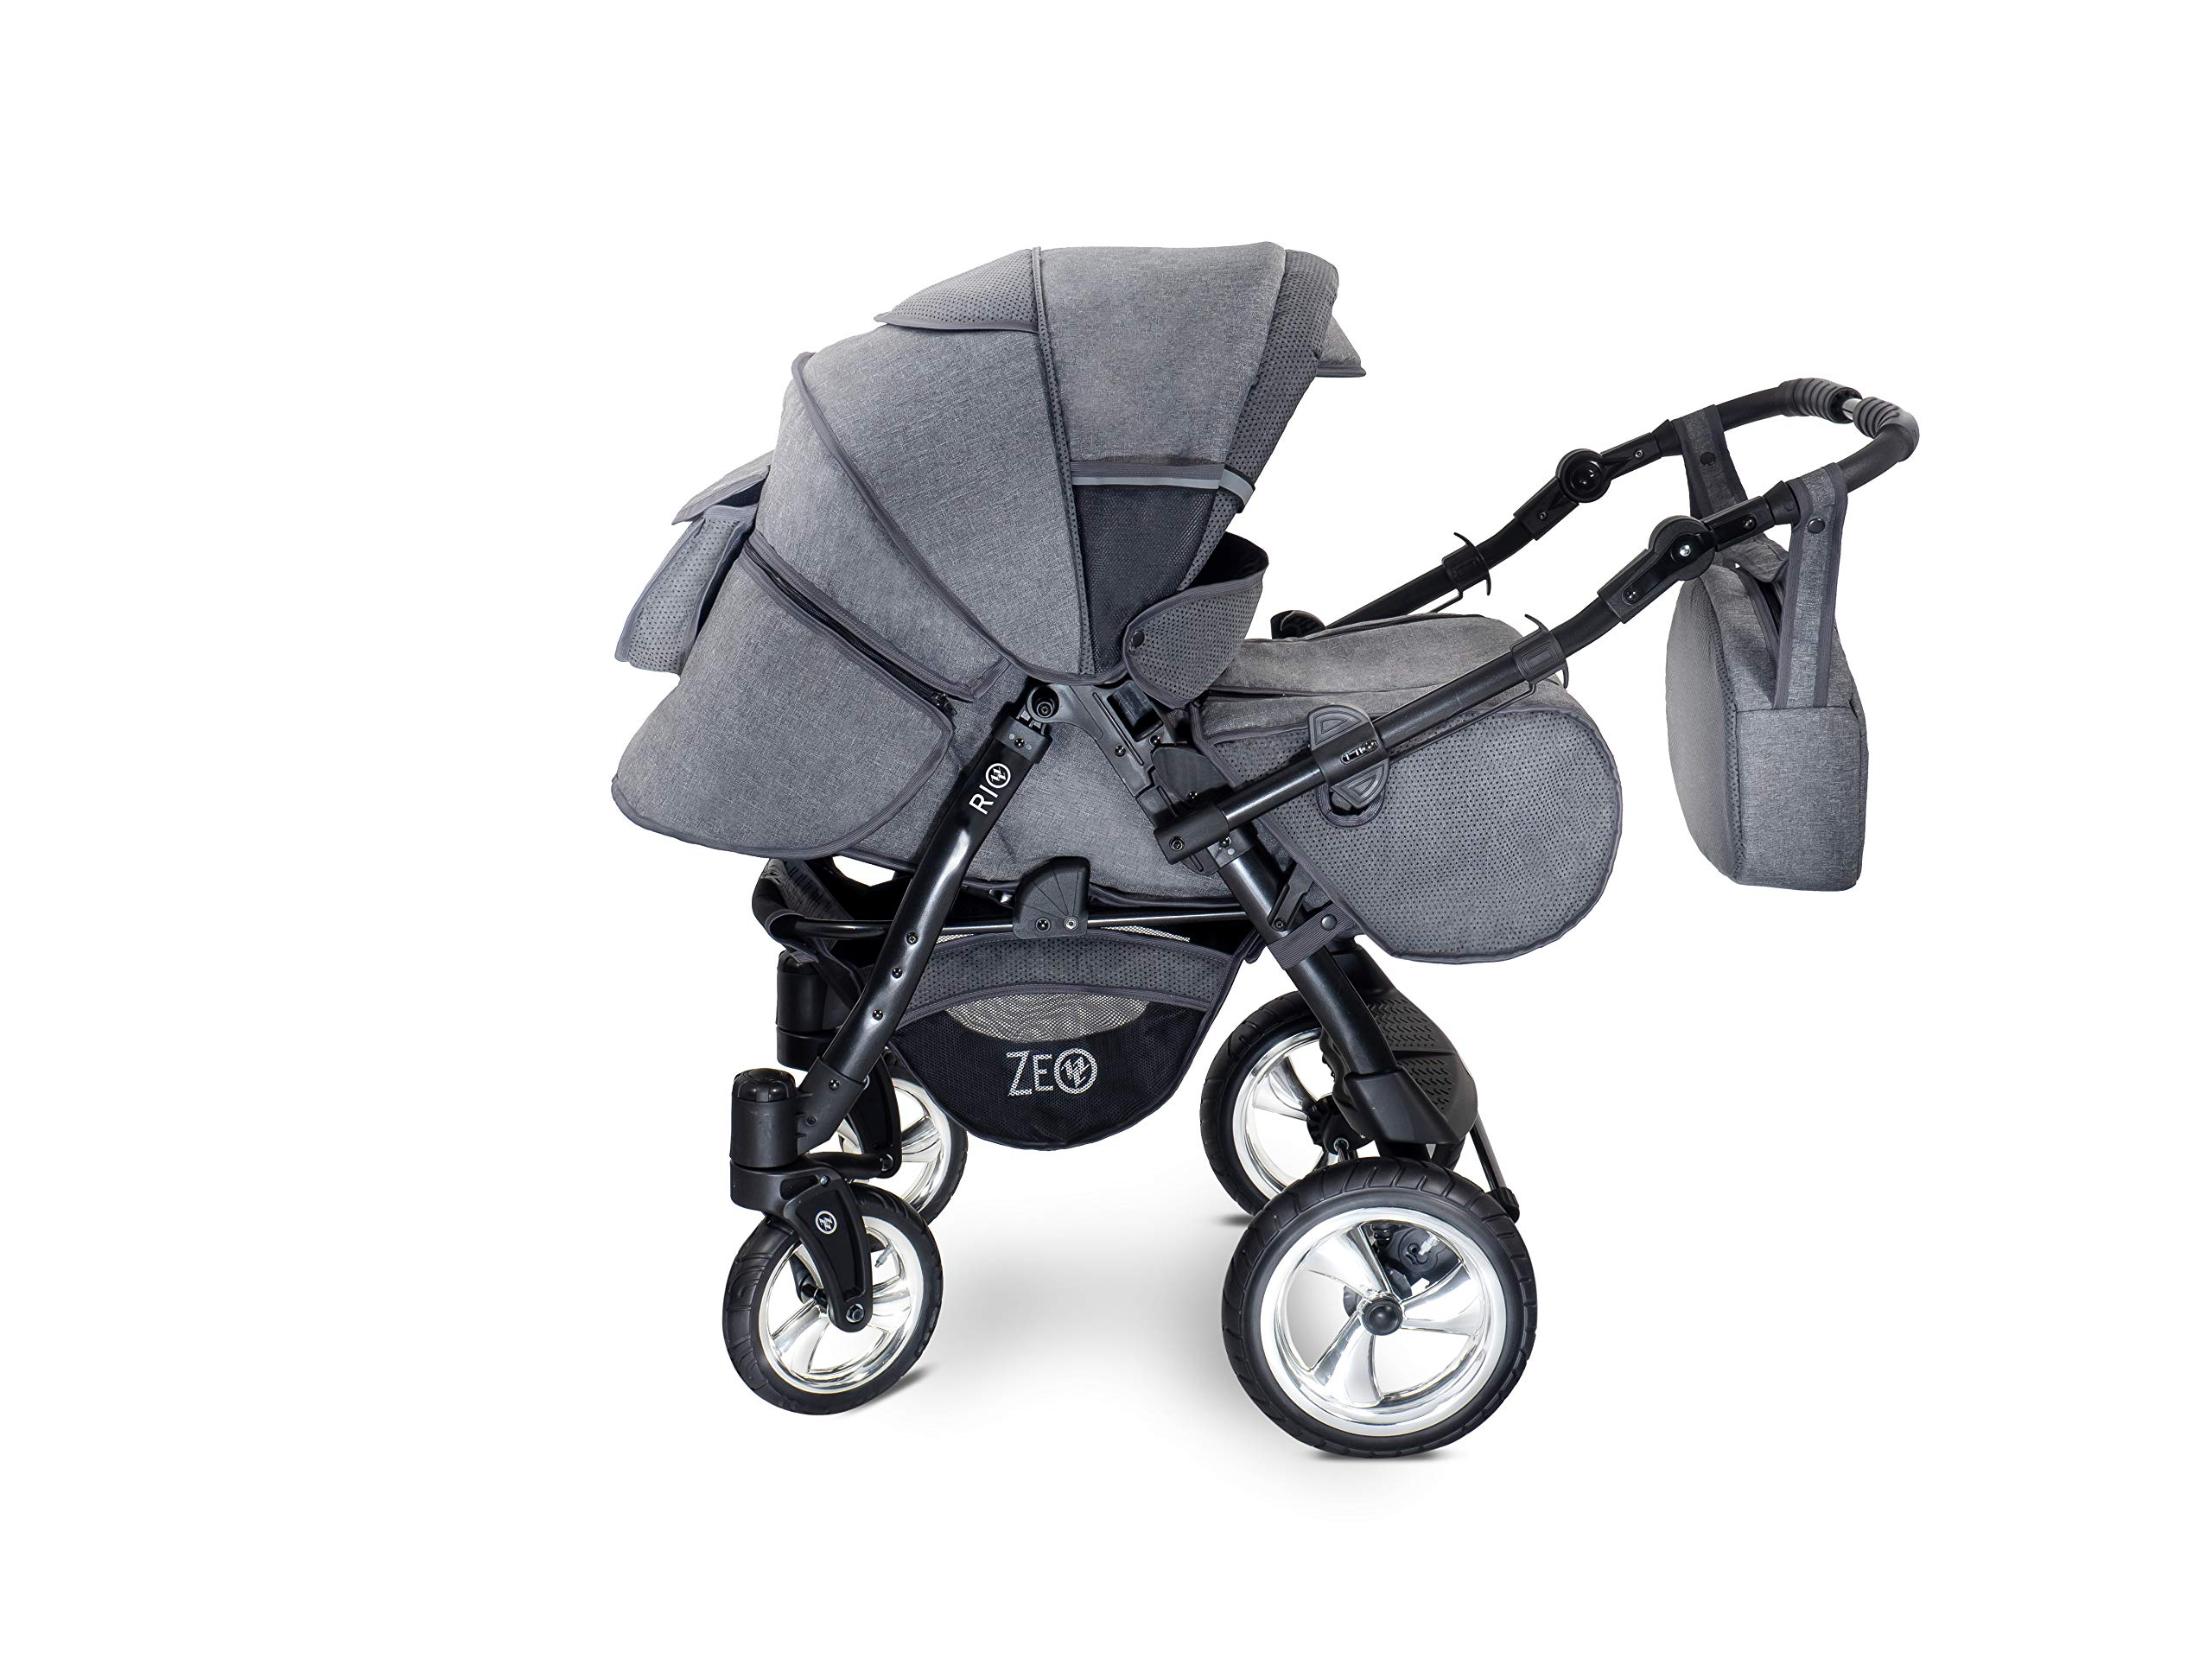 Baby Pram Zeo Rio 3in1 Set - All You Need! carrycot Gondola Buggy Pushchair car seat (R3) Zeo 3 in 1 combination stroller complete set, with reversible handle to the buggy, child car seat or baby carriage Has 360 ° swiveling wheels, two-fold suspension, four-stage backrest, five-position adjustable footrest and a five-point safety belt The stroller can be easily converted into other functions and easy to transport 3